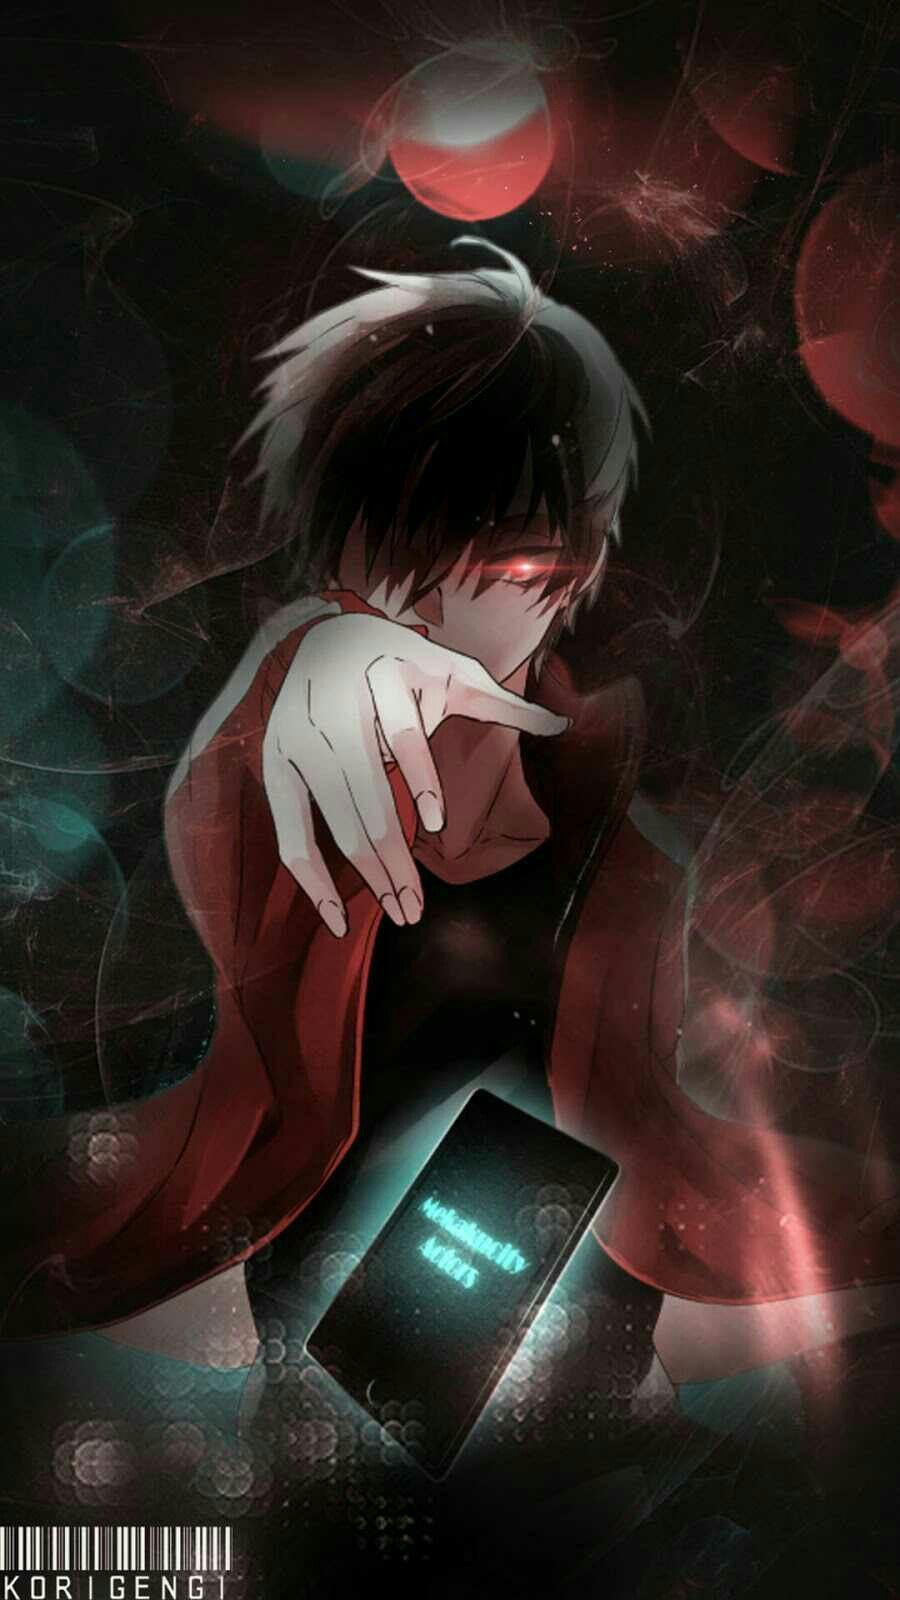 Bad Anime Boys Wallpapers Wallpaper Cave